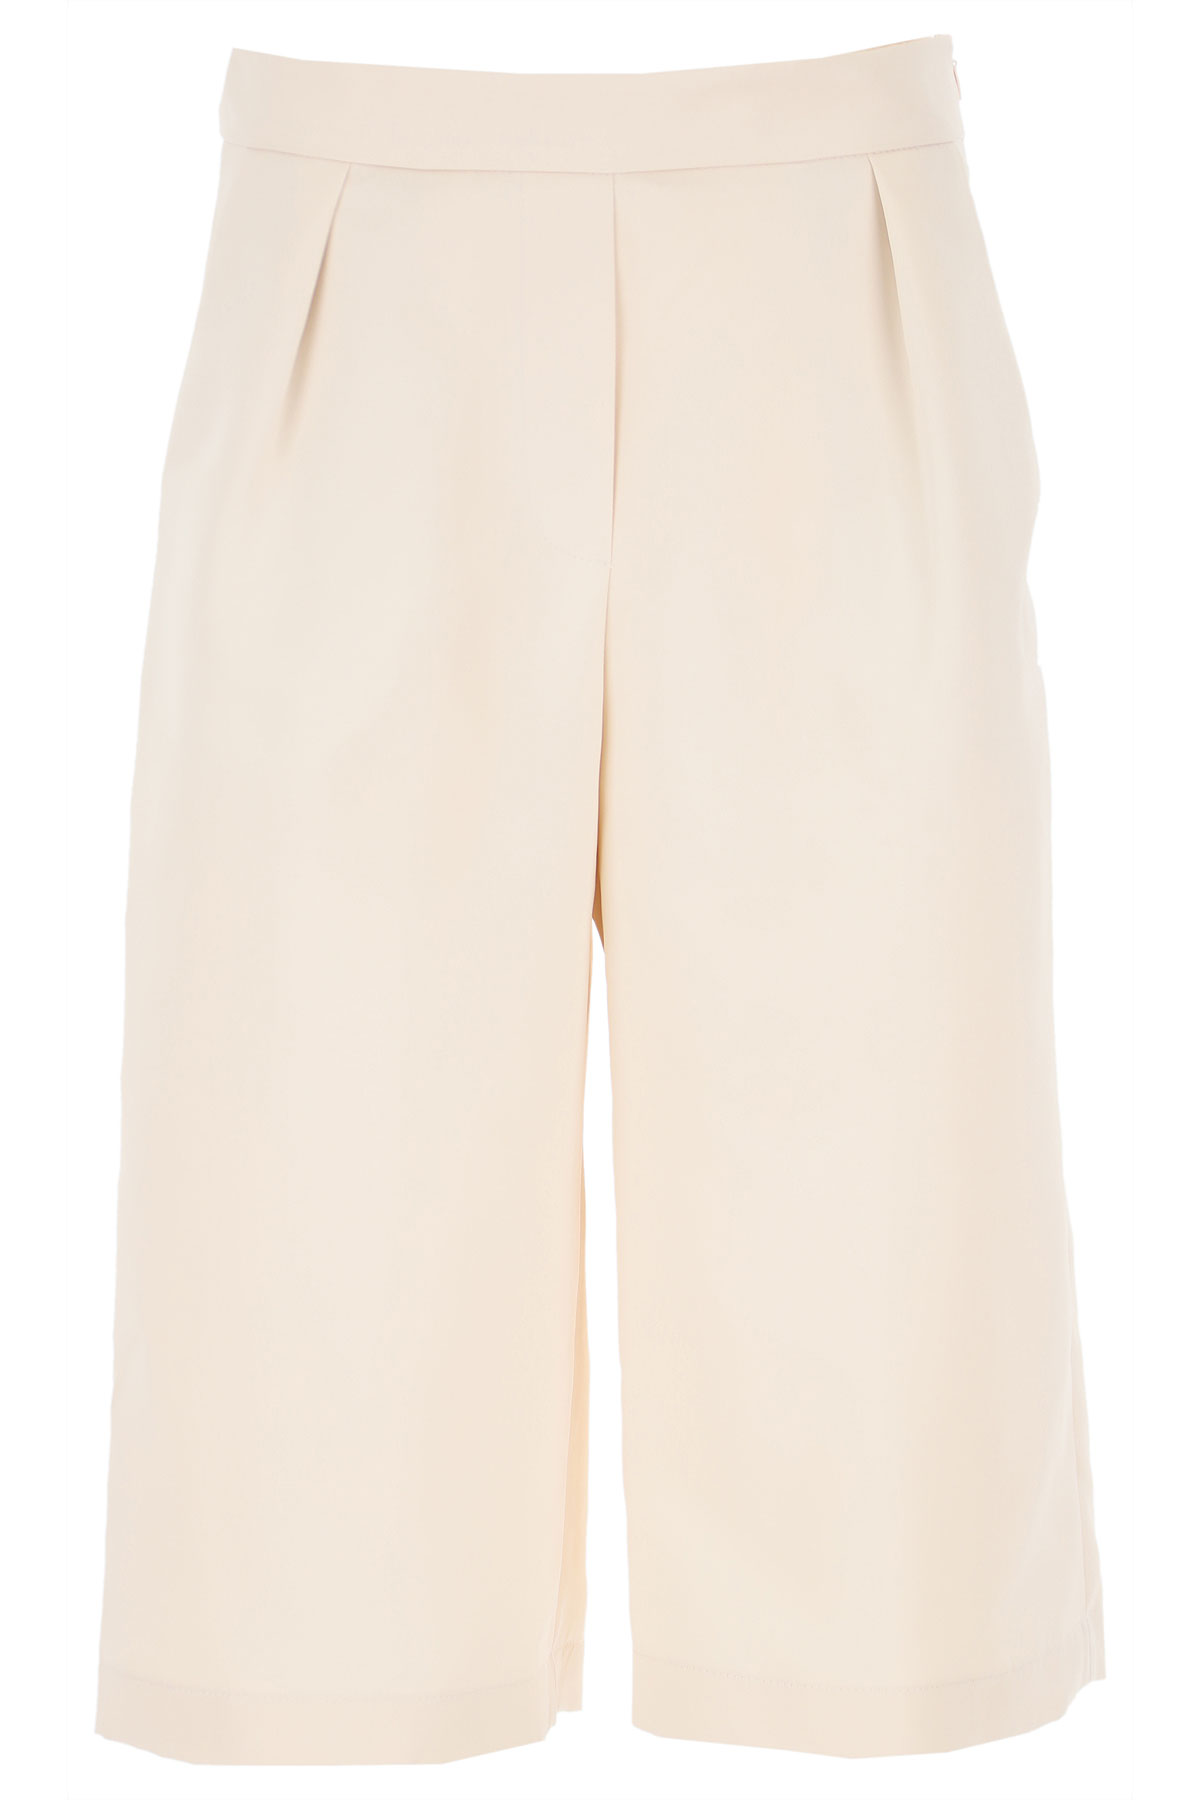 8 PM Pants for Women On Sale, Pearl White, polyestere, 2019, 4 6